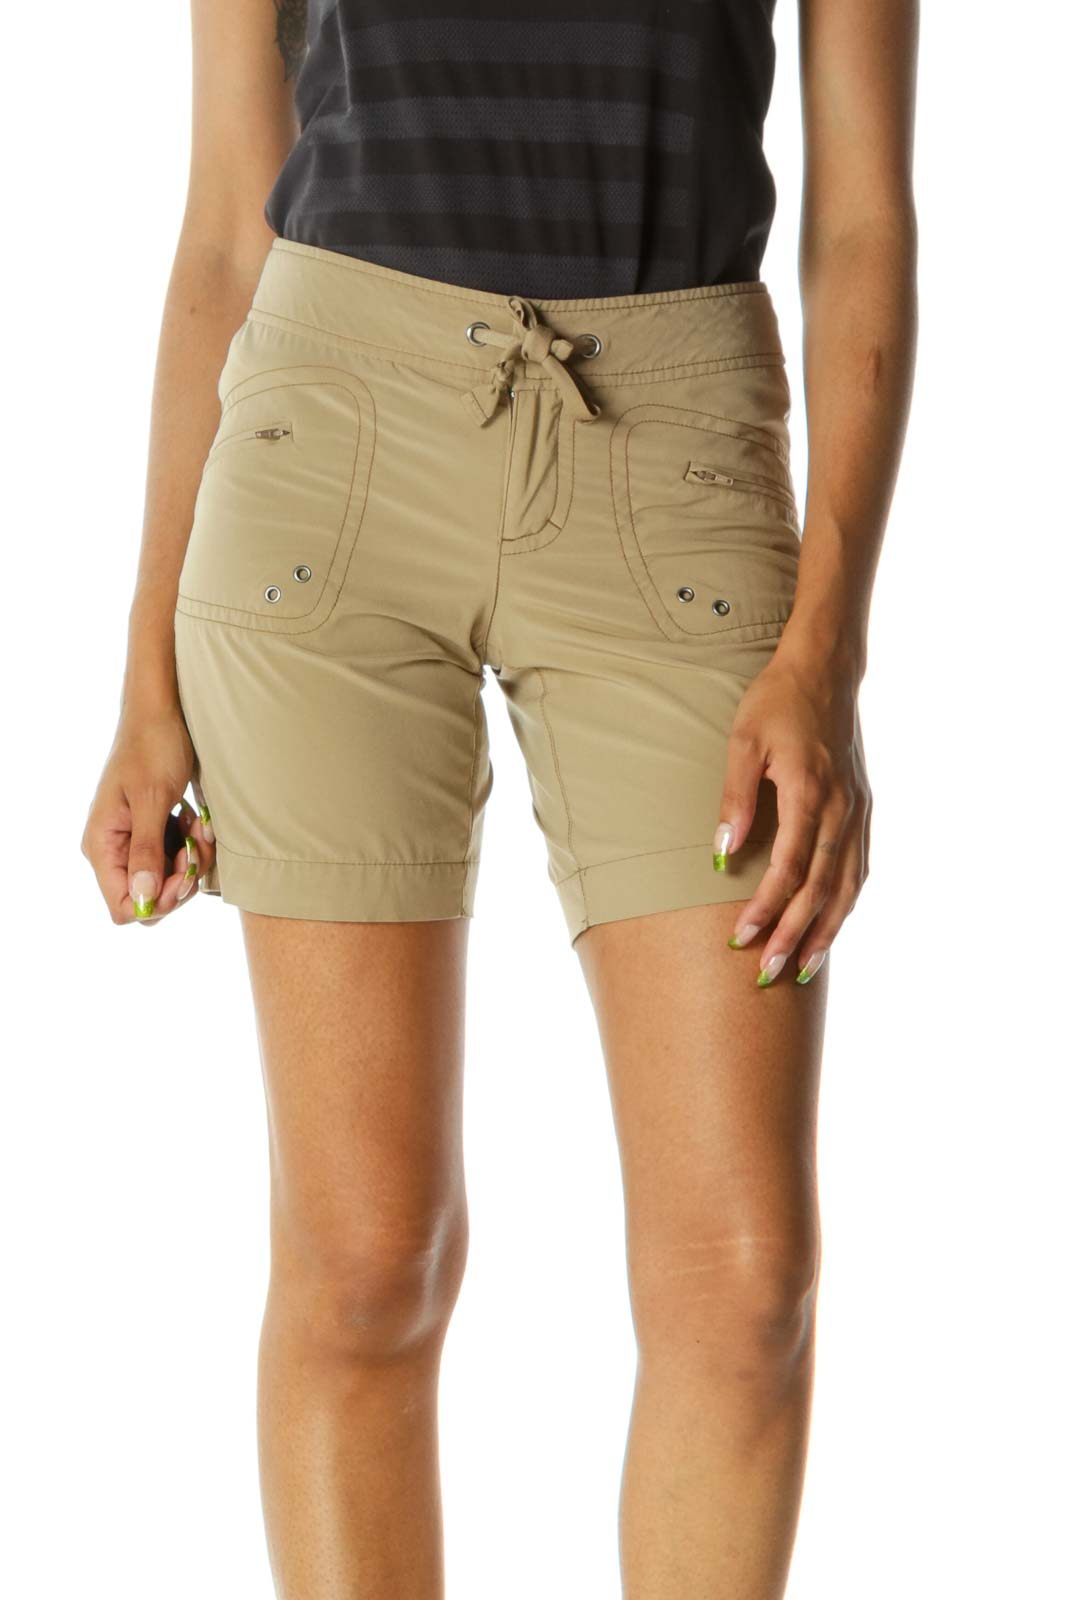 Brown Front Knot Zippered Pockets Stretch Shorts